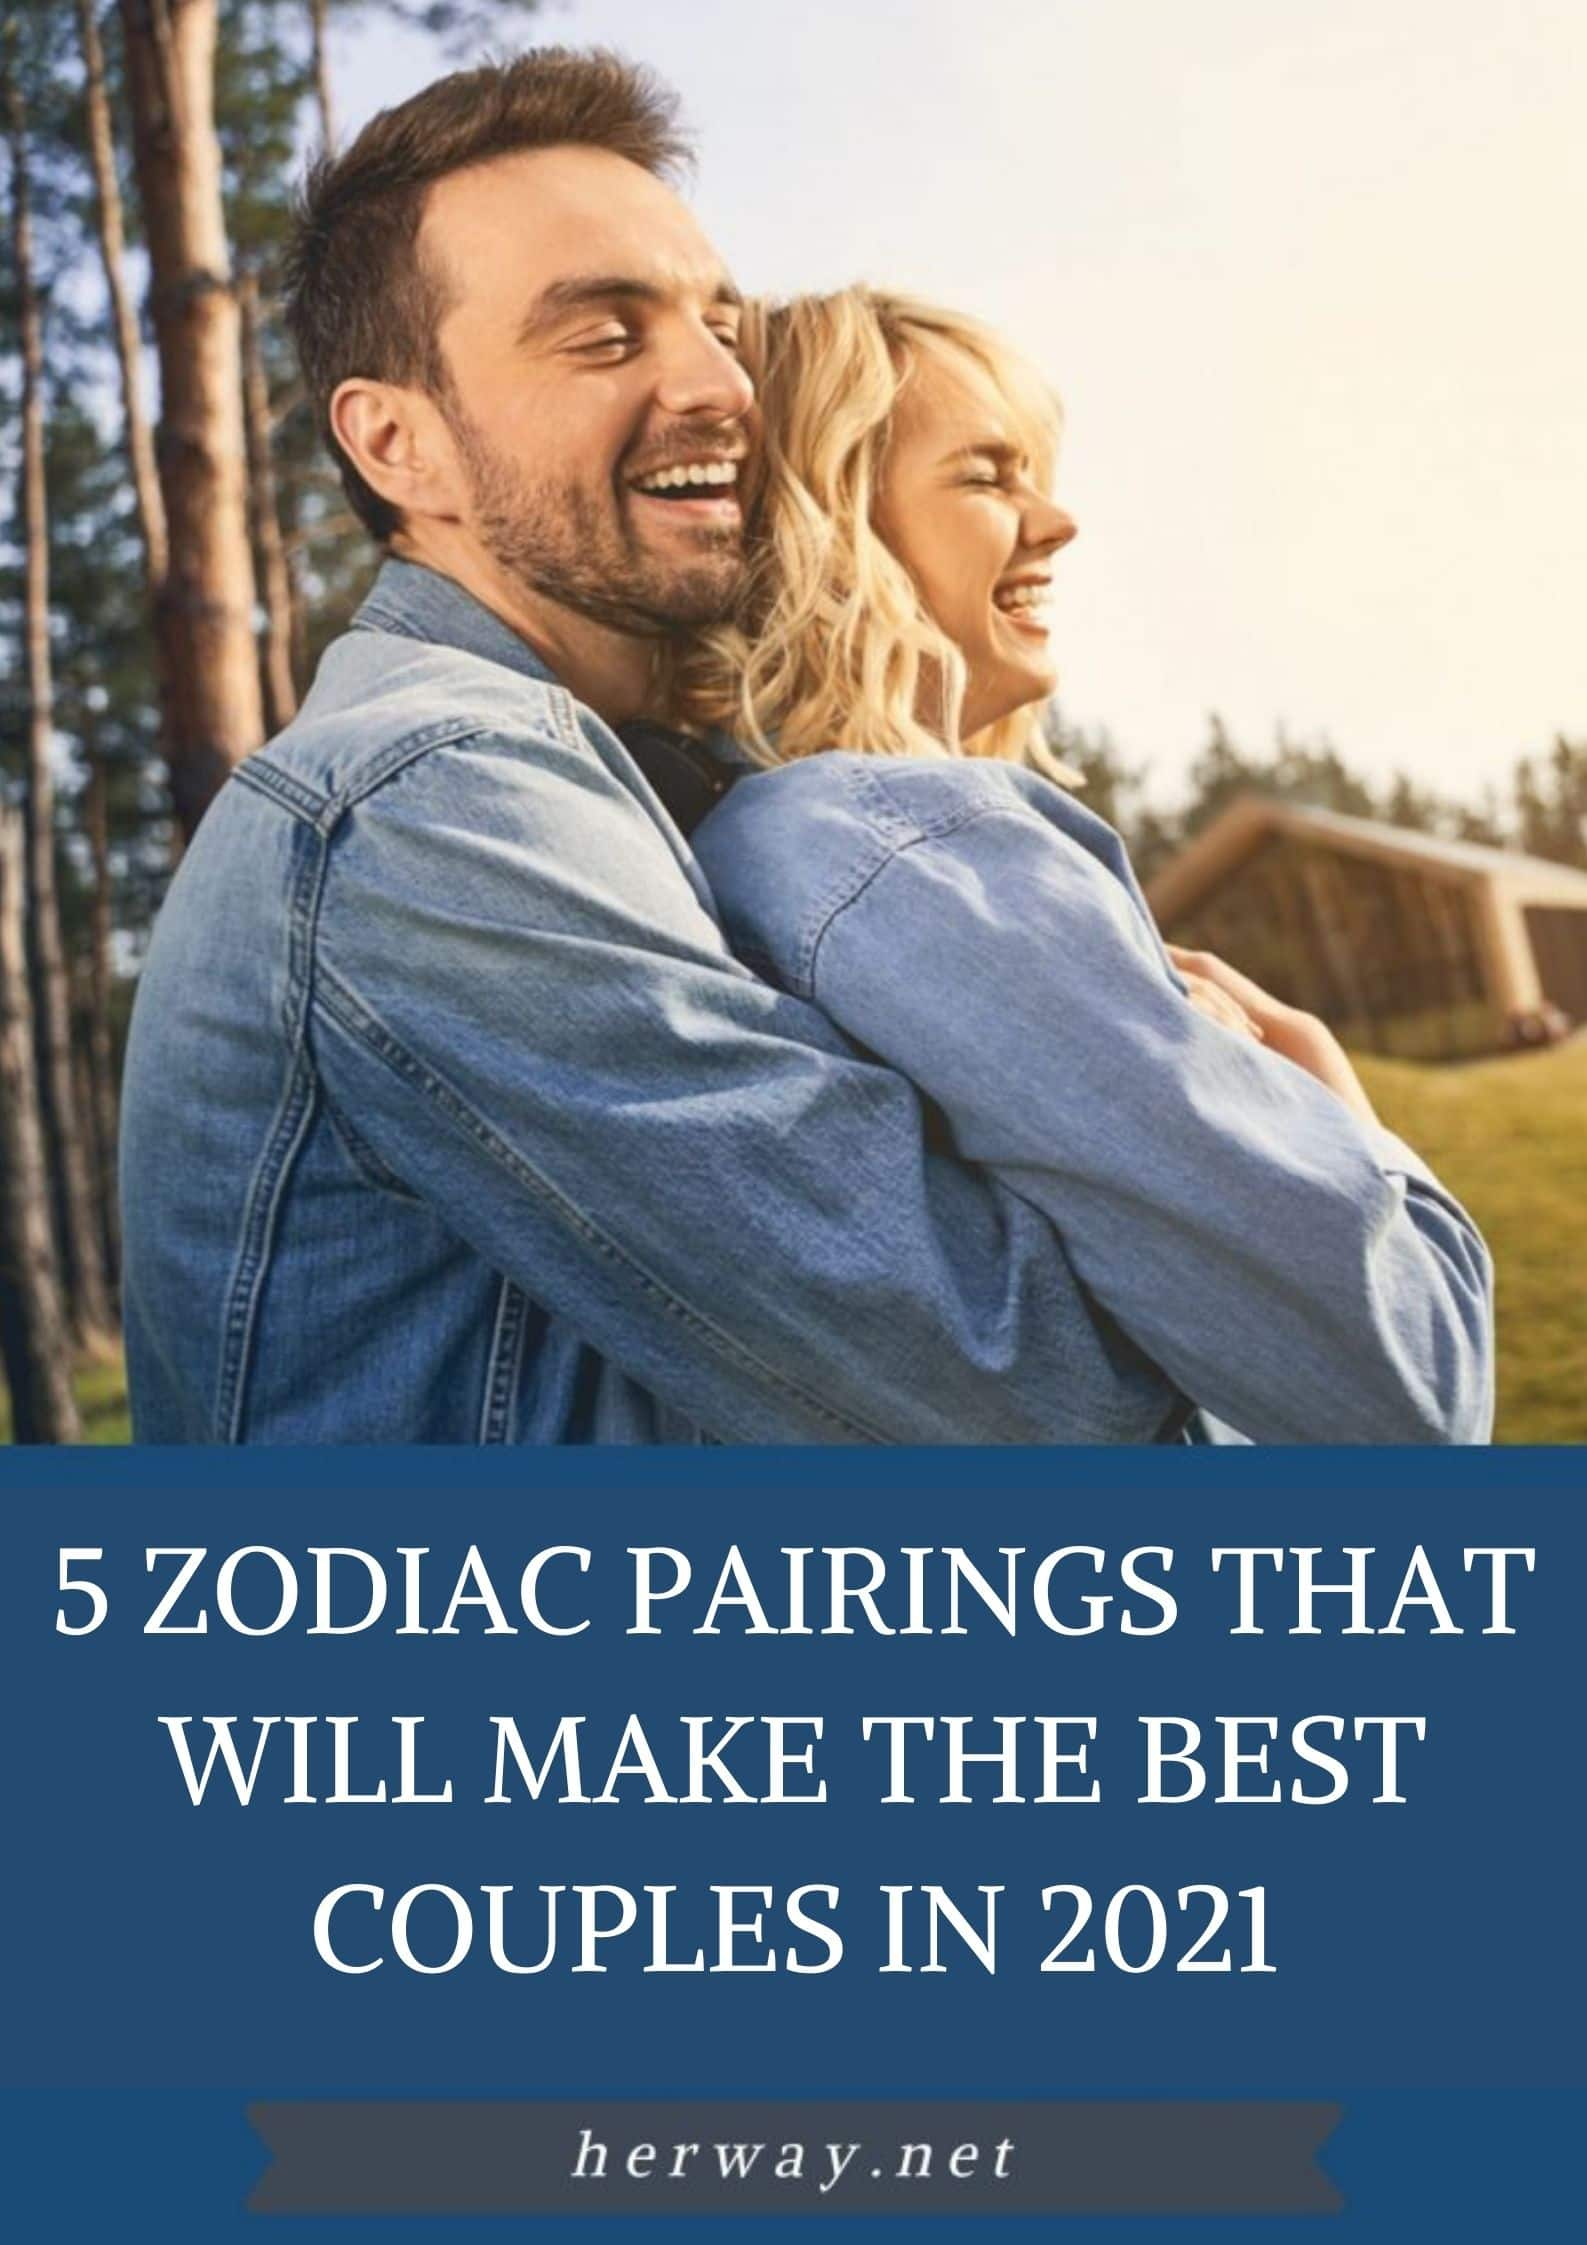 5 Zodiac Pairings That Will Make The Best Couples in 2021